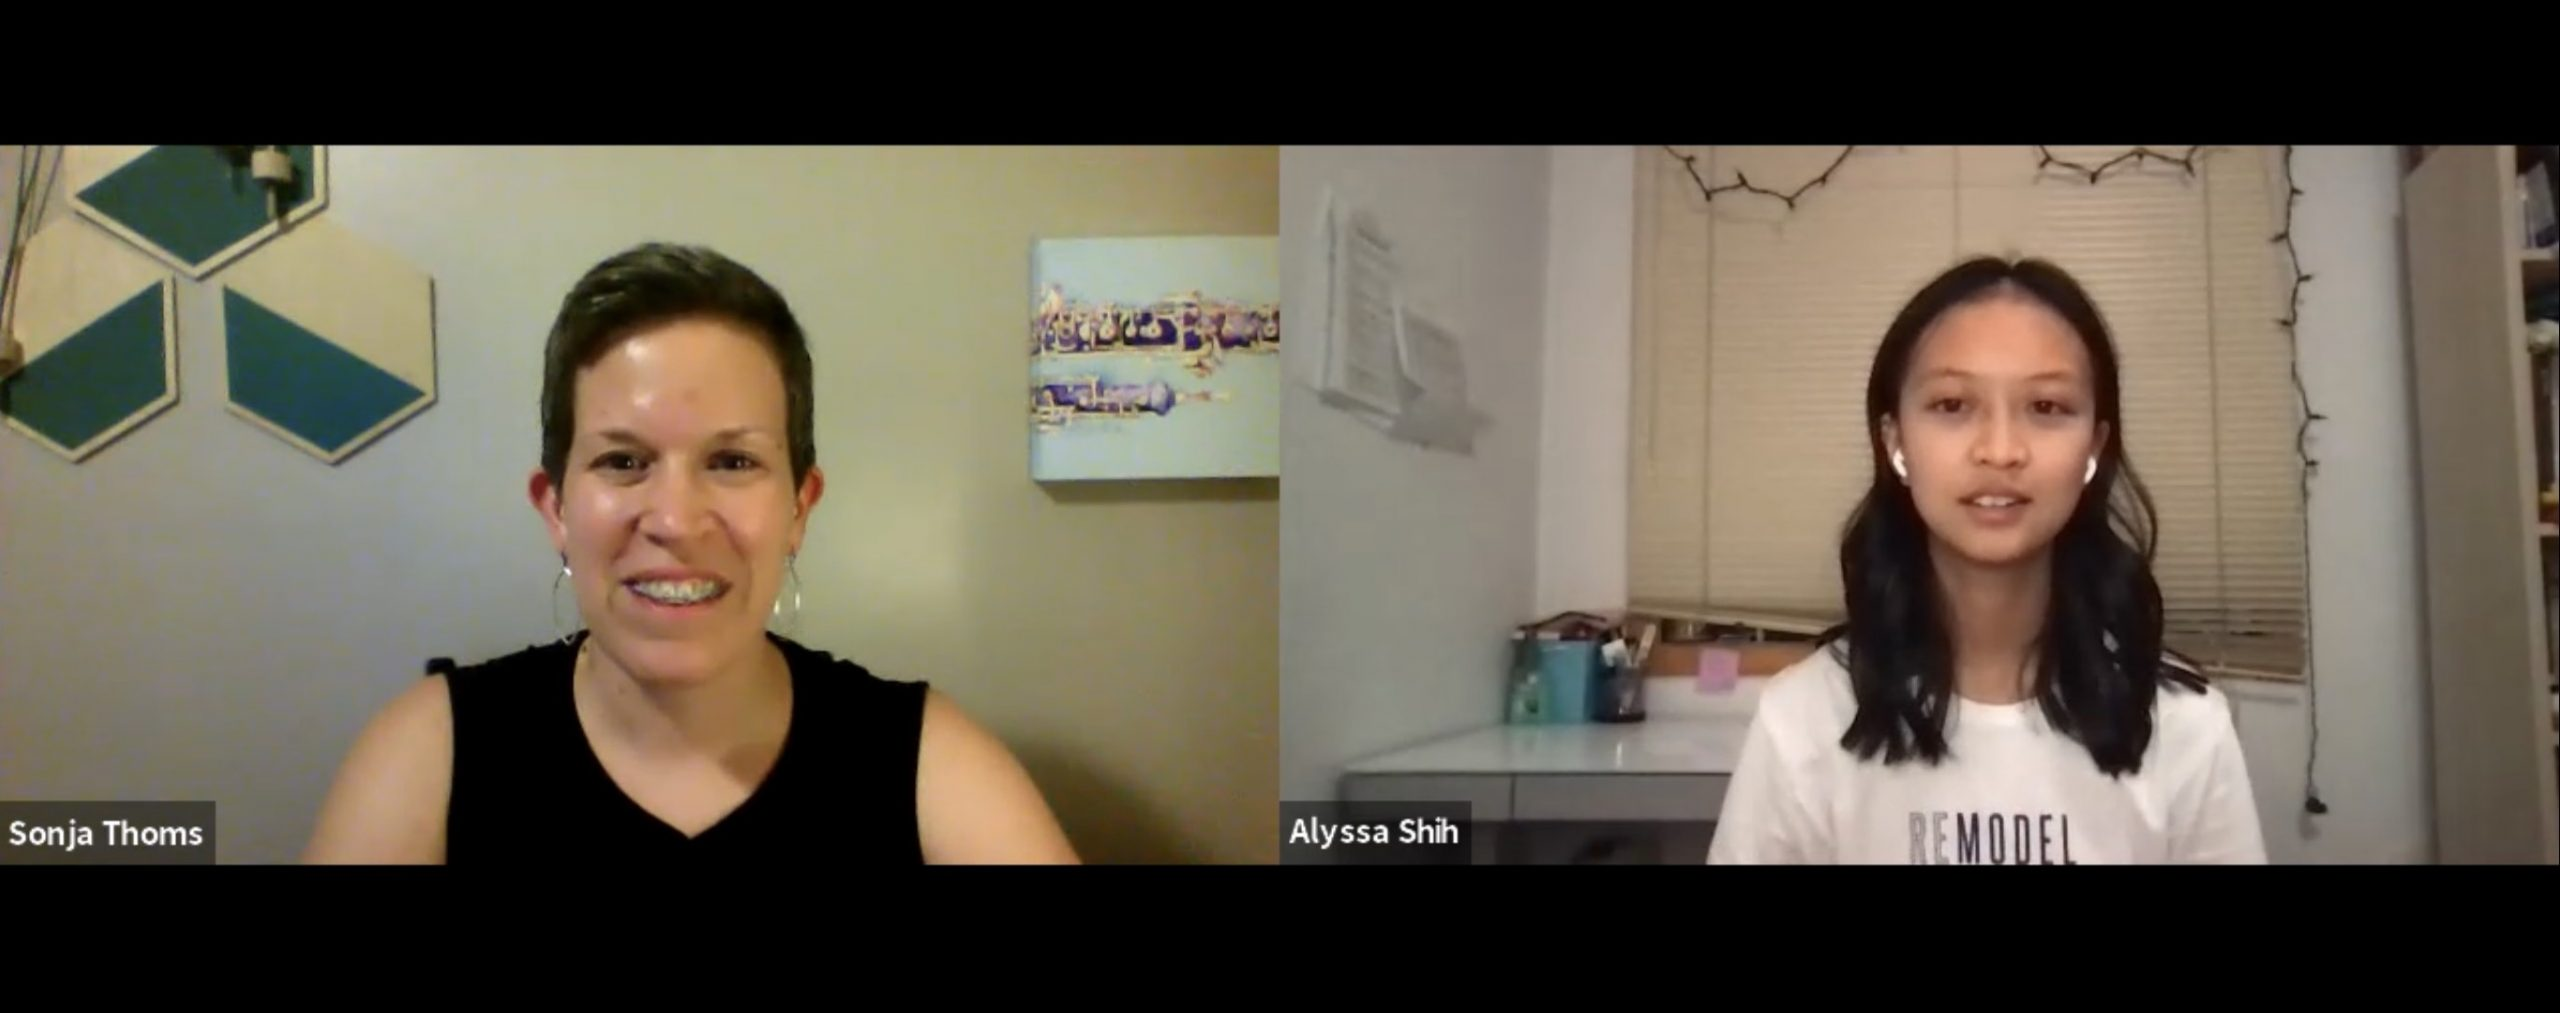 Zoom call with Sonja Thoms and Alyssa Shih